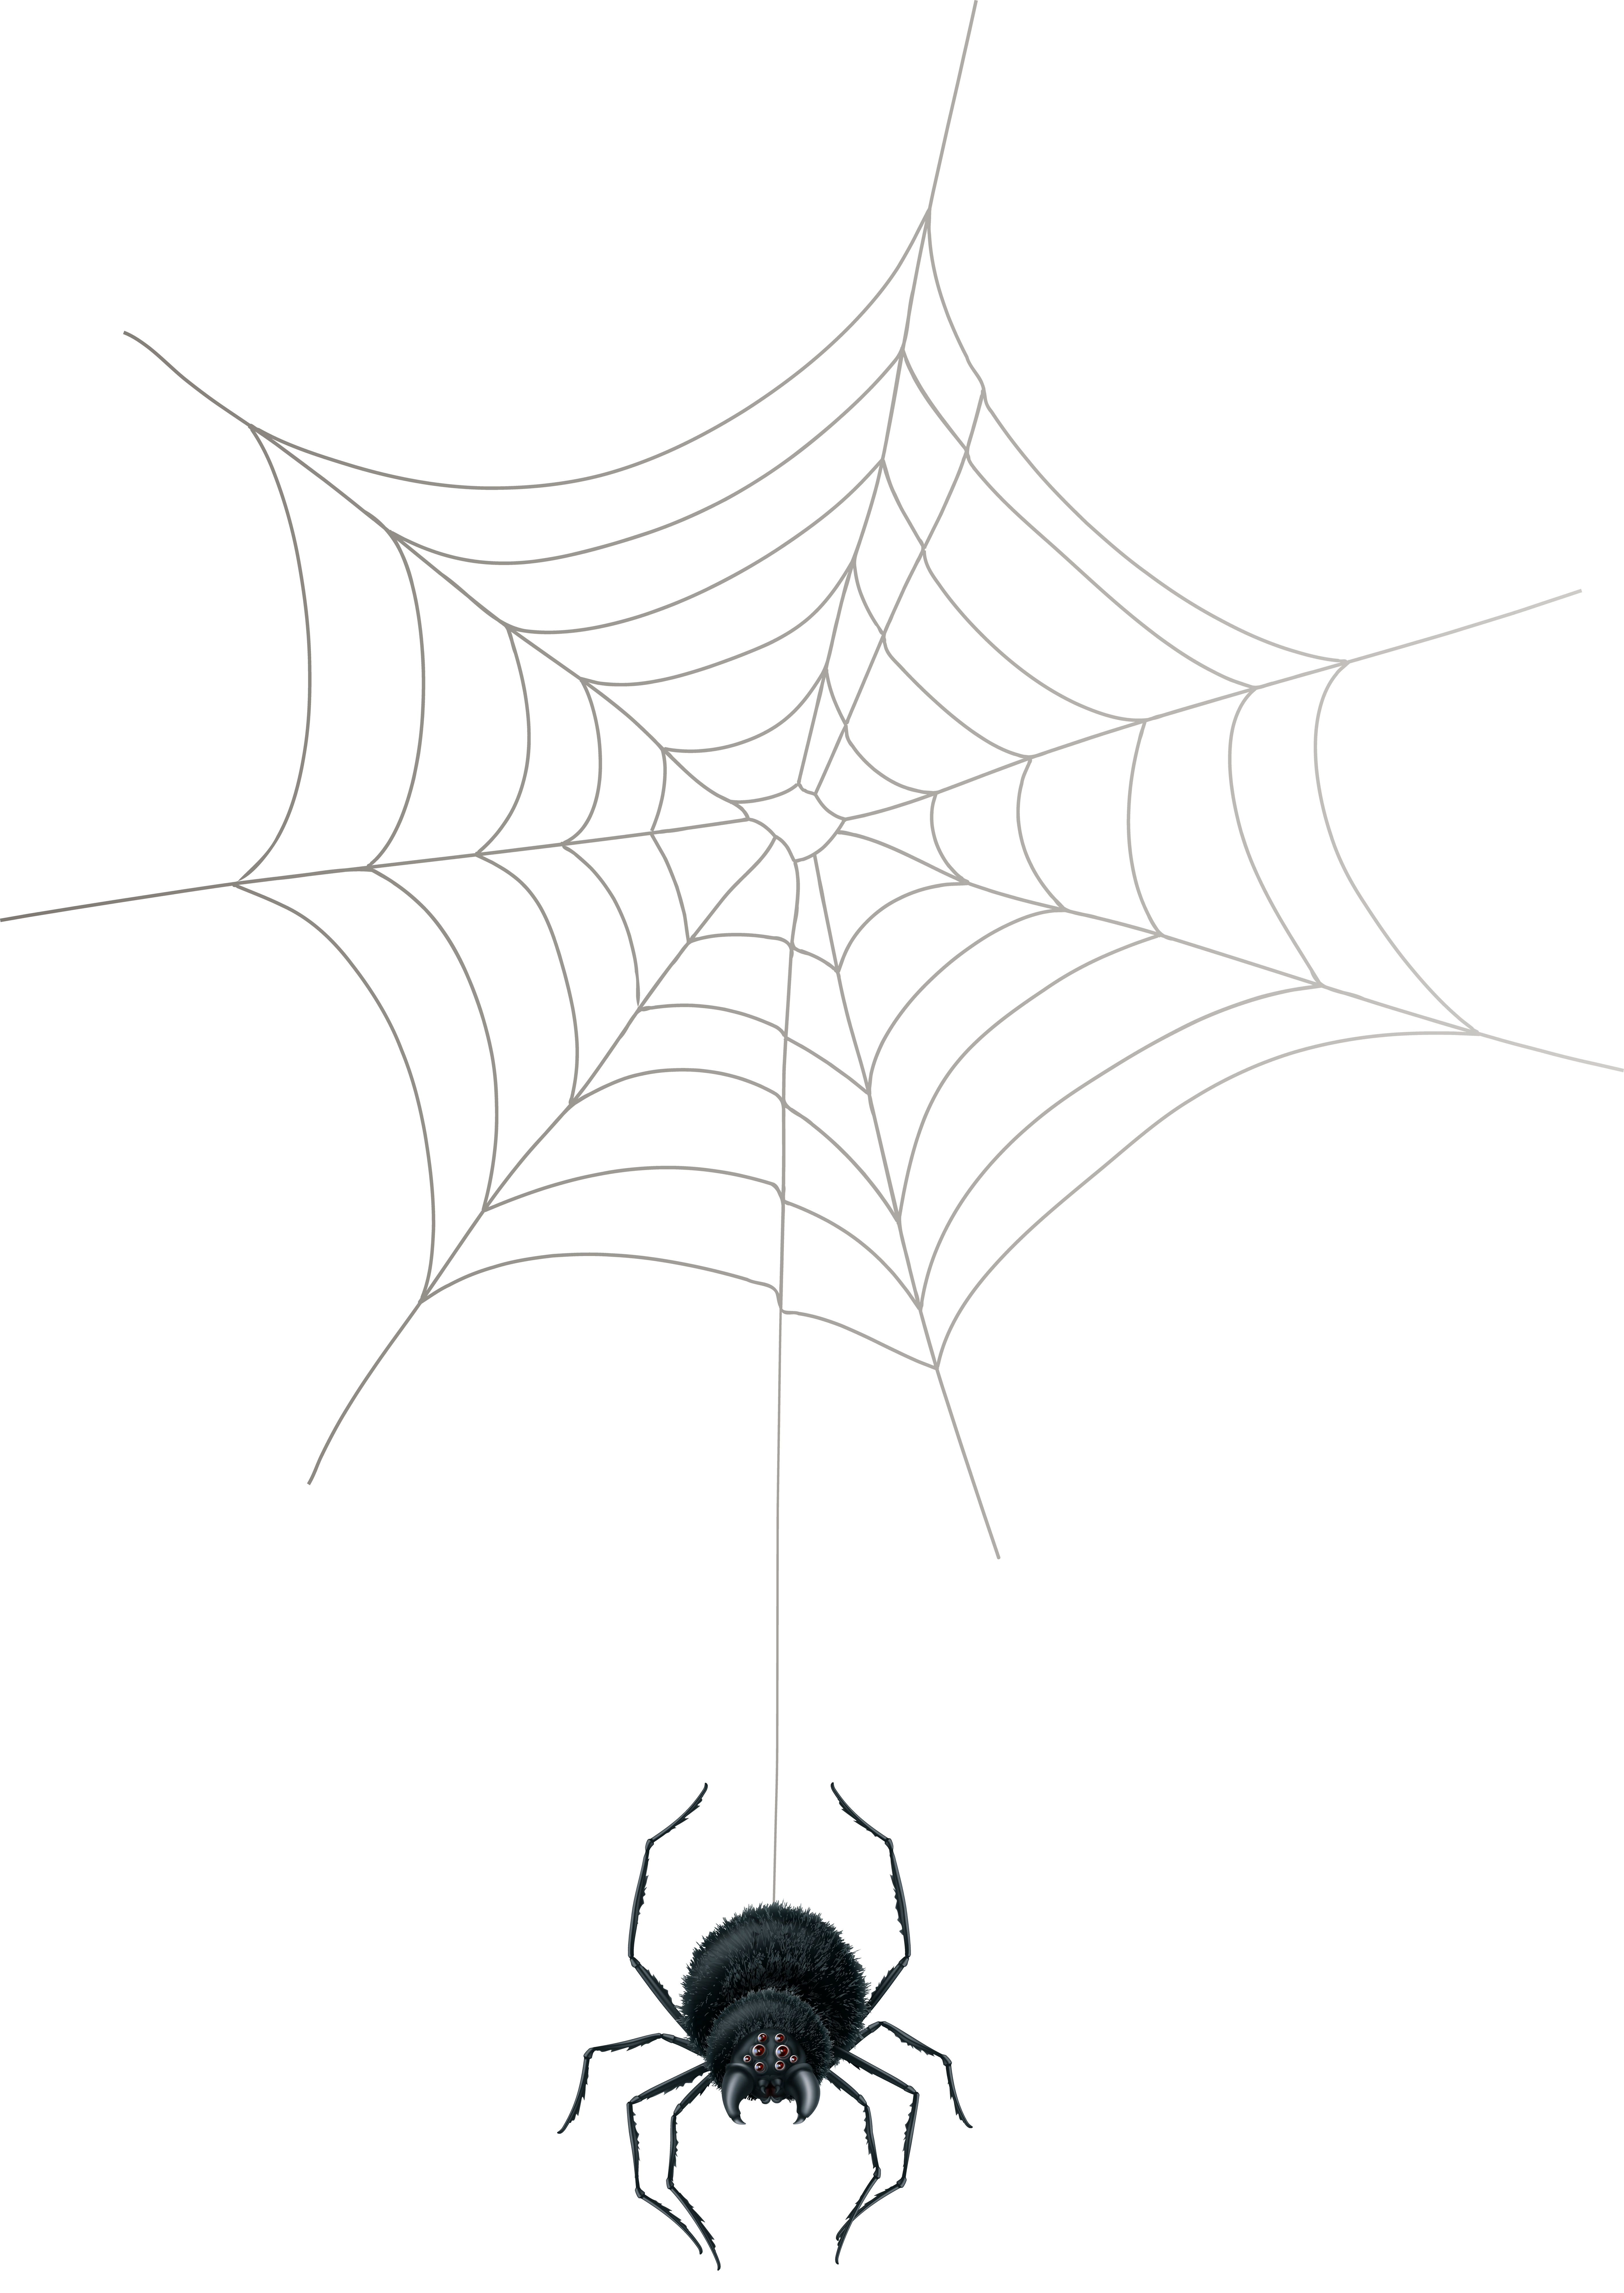 Spider web border png. Clip art gallery yopriceville